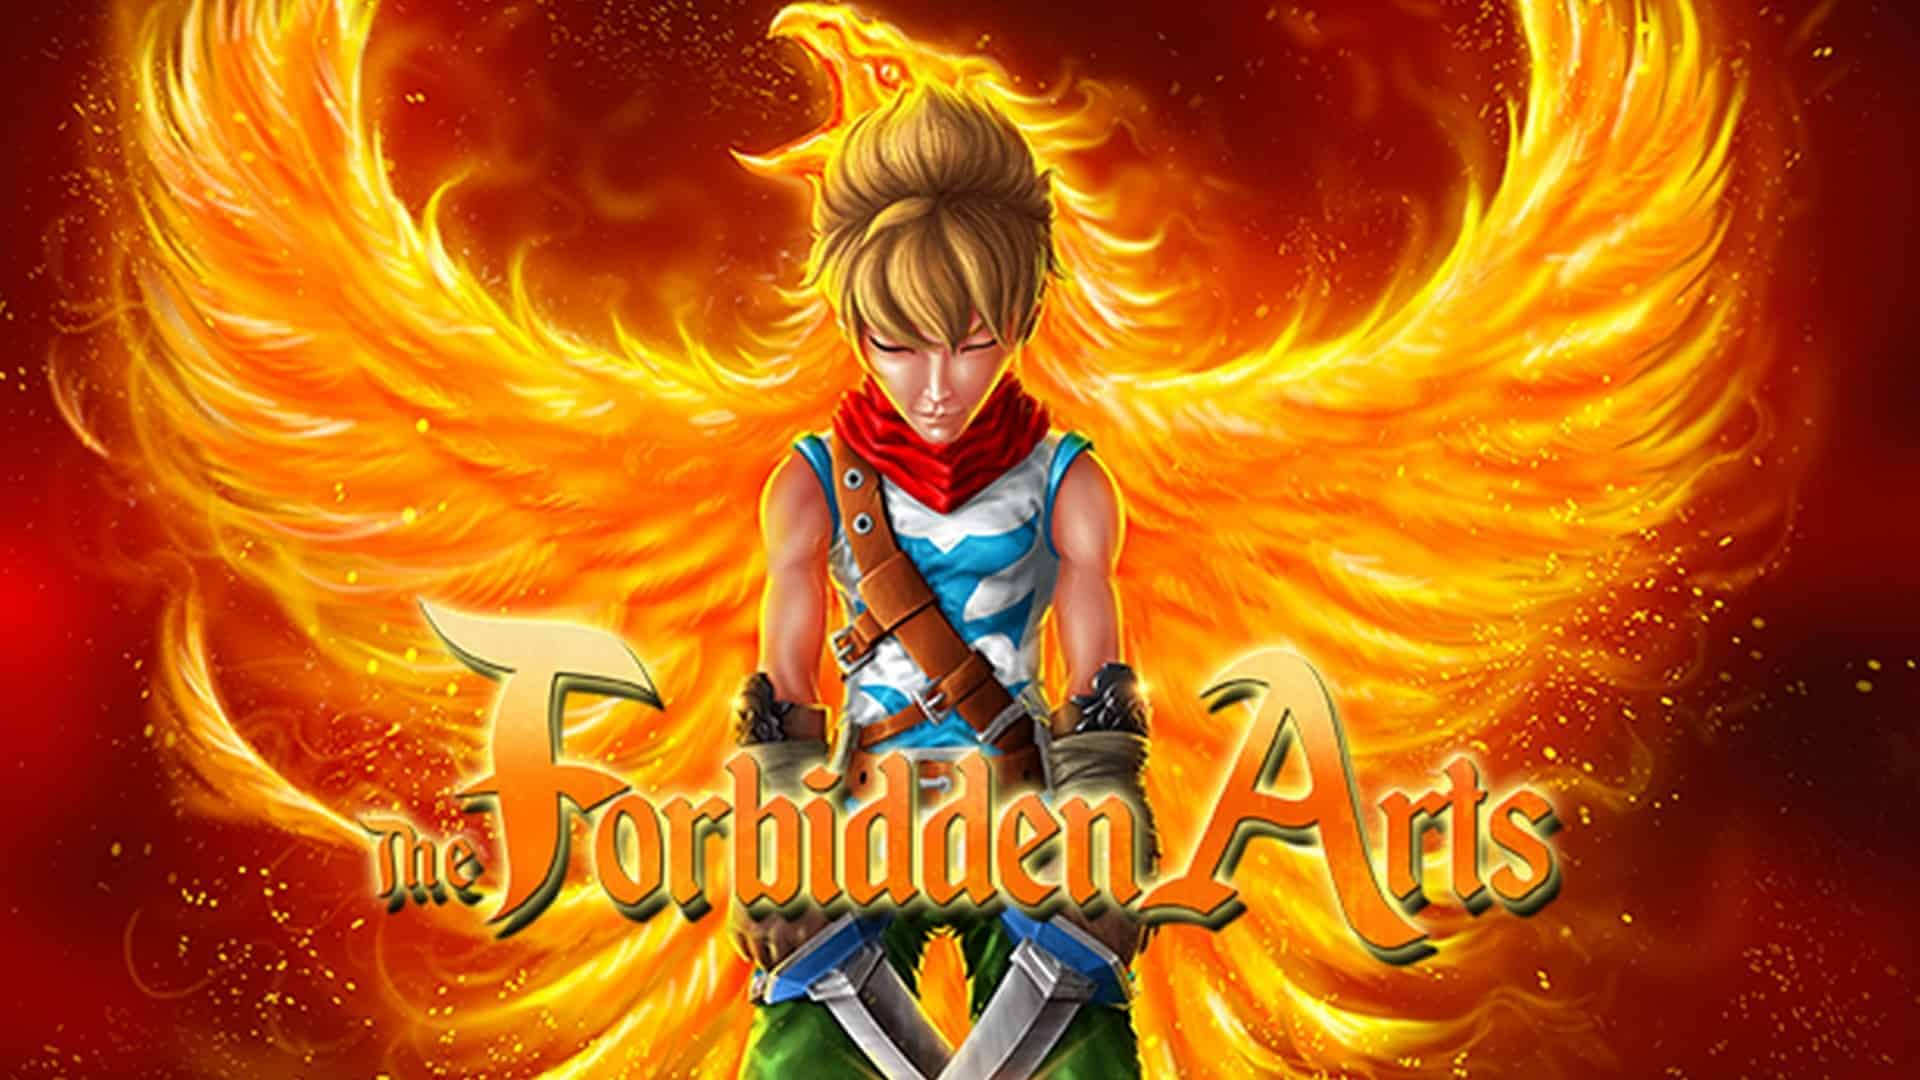 The Forbidden Arts Sets Fire to Nintendo Switch, Xbox One & Steam On 7 Aug